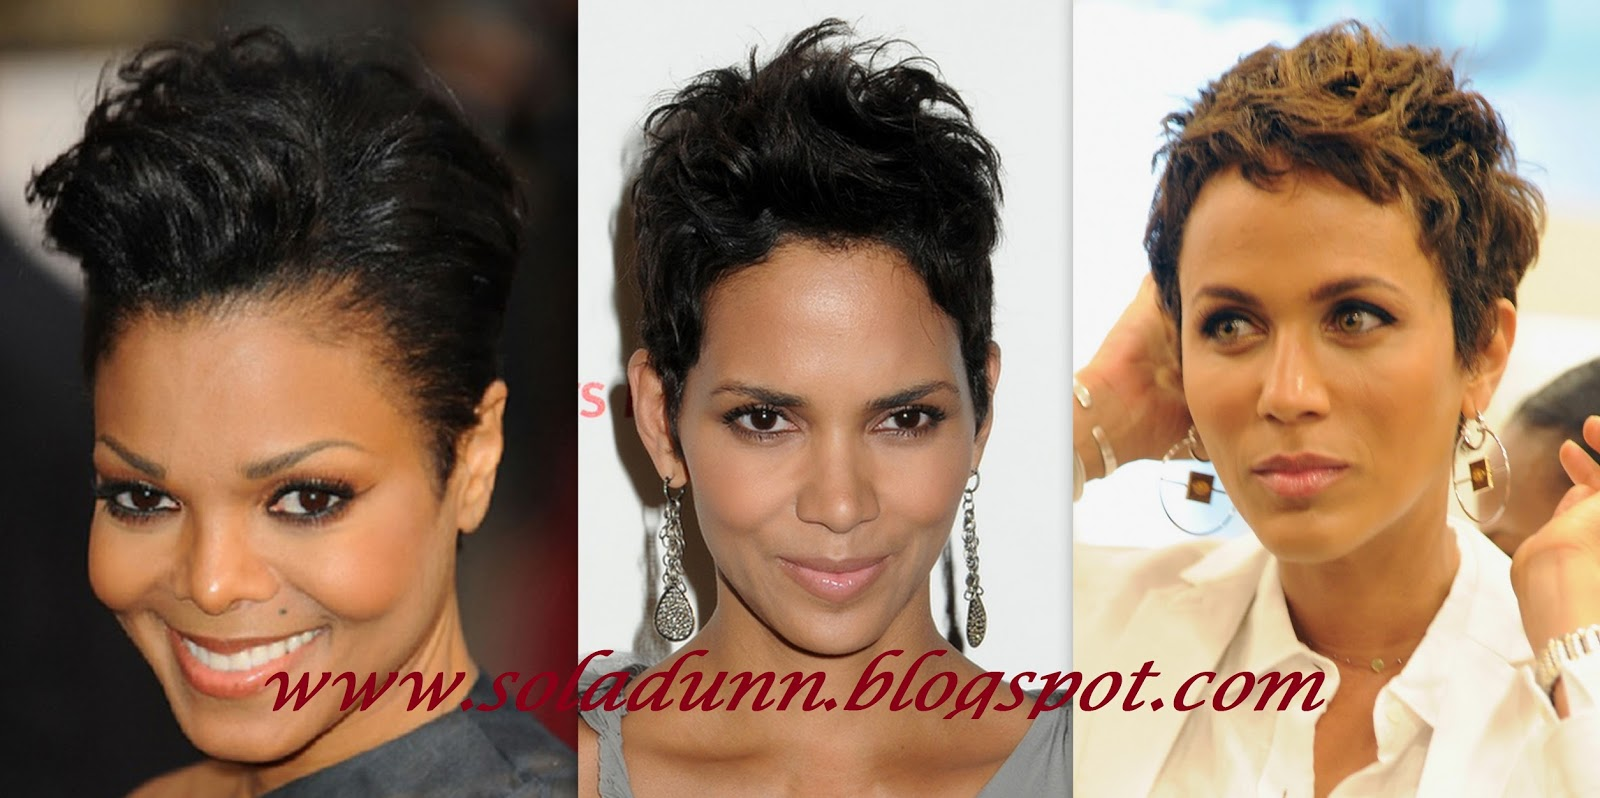 Soladunns Blog The Best Pixie Haircut To Match Your Oval Face